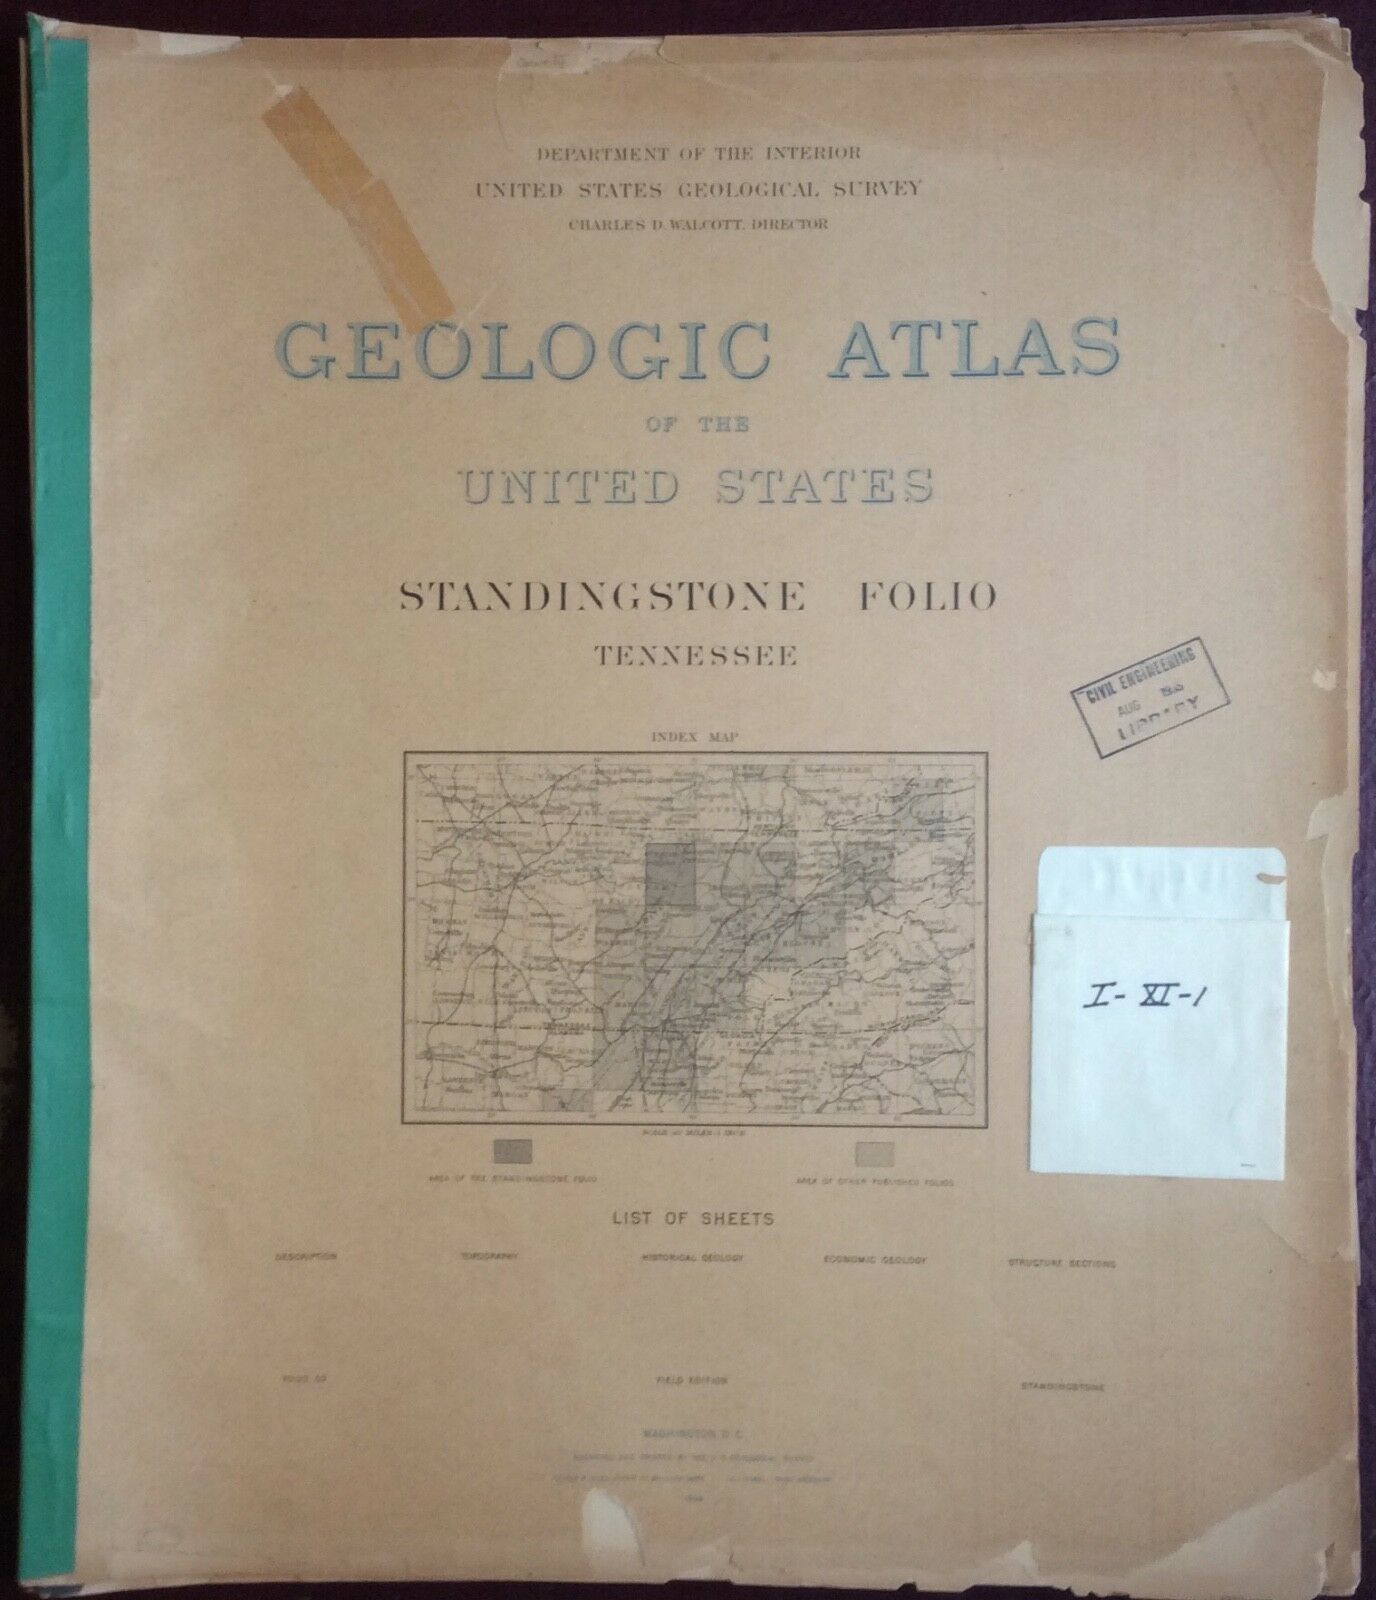 Tennessee 1890 StandingStone Folio 53 USGS Field Edition Atlas - $10.00